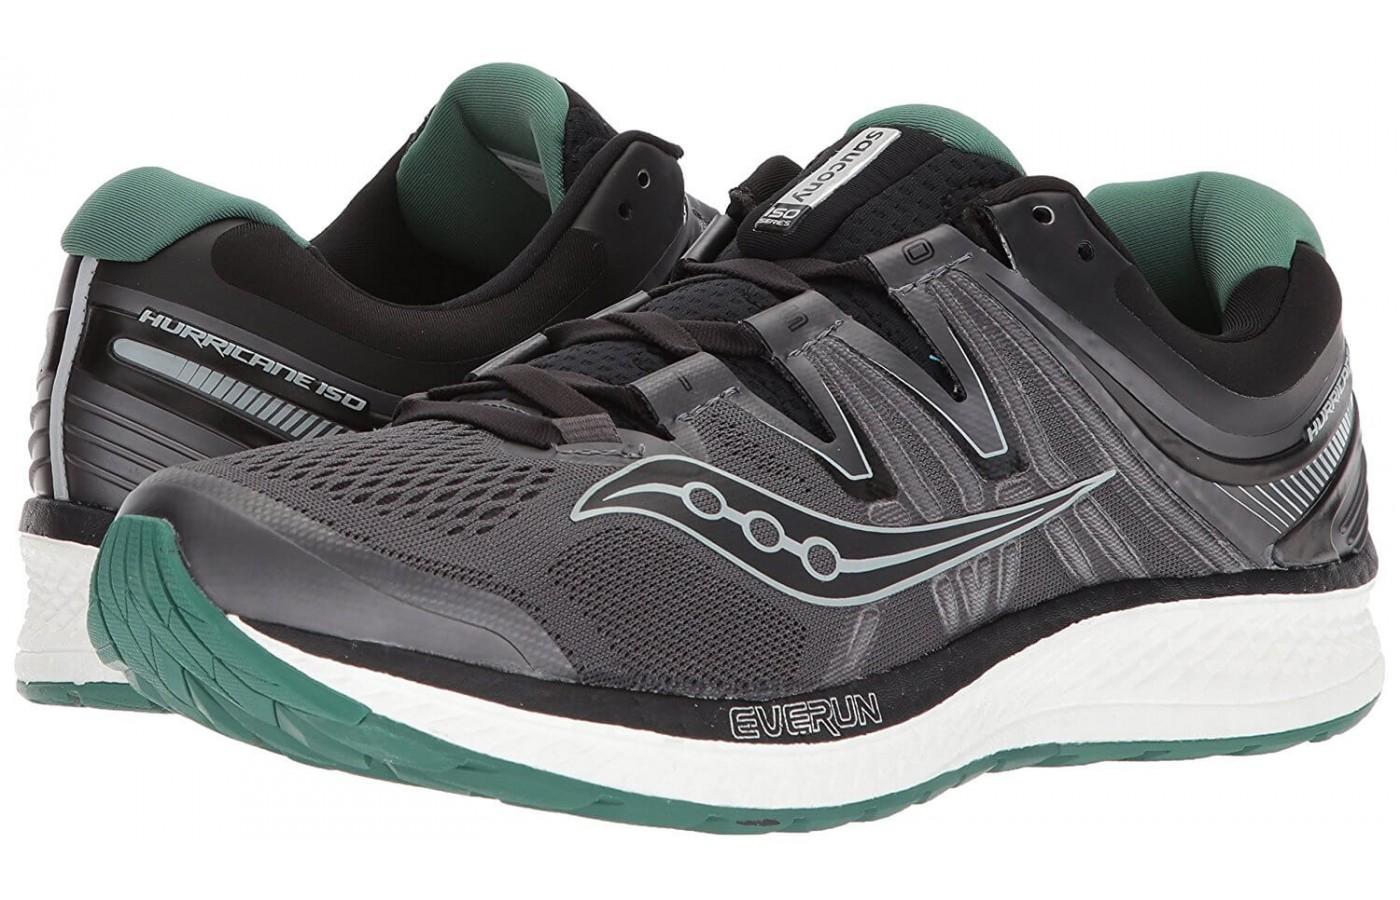 The Saucony Hurricane ISO 4 features an ISOFIT upper design